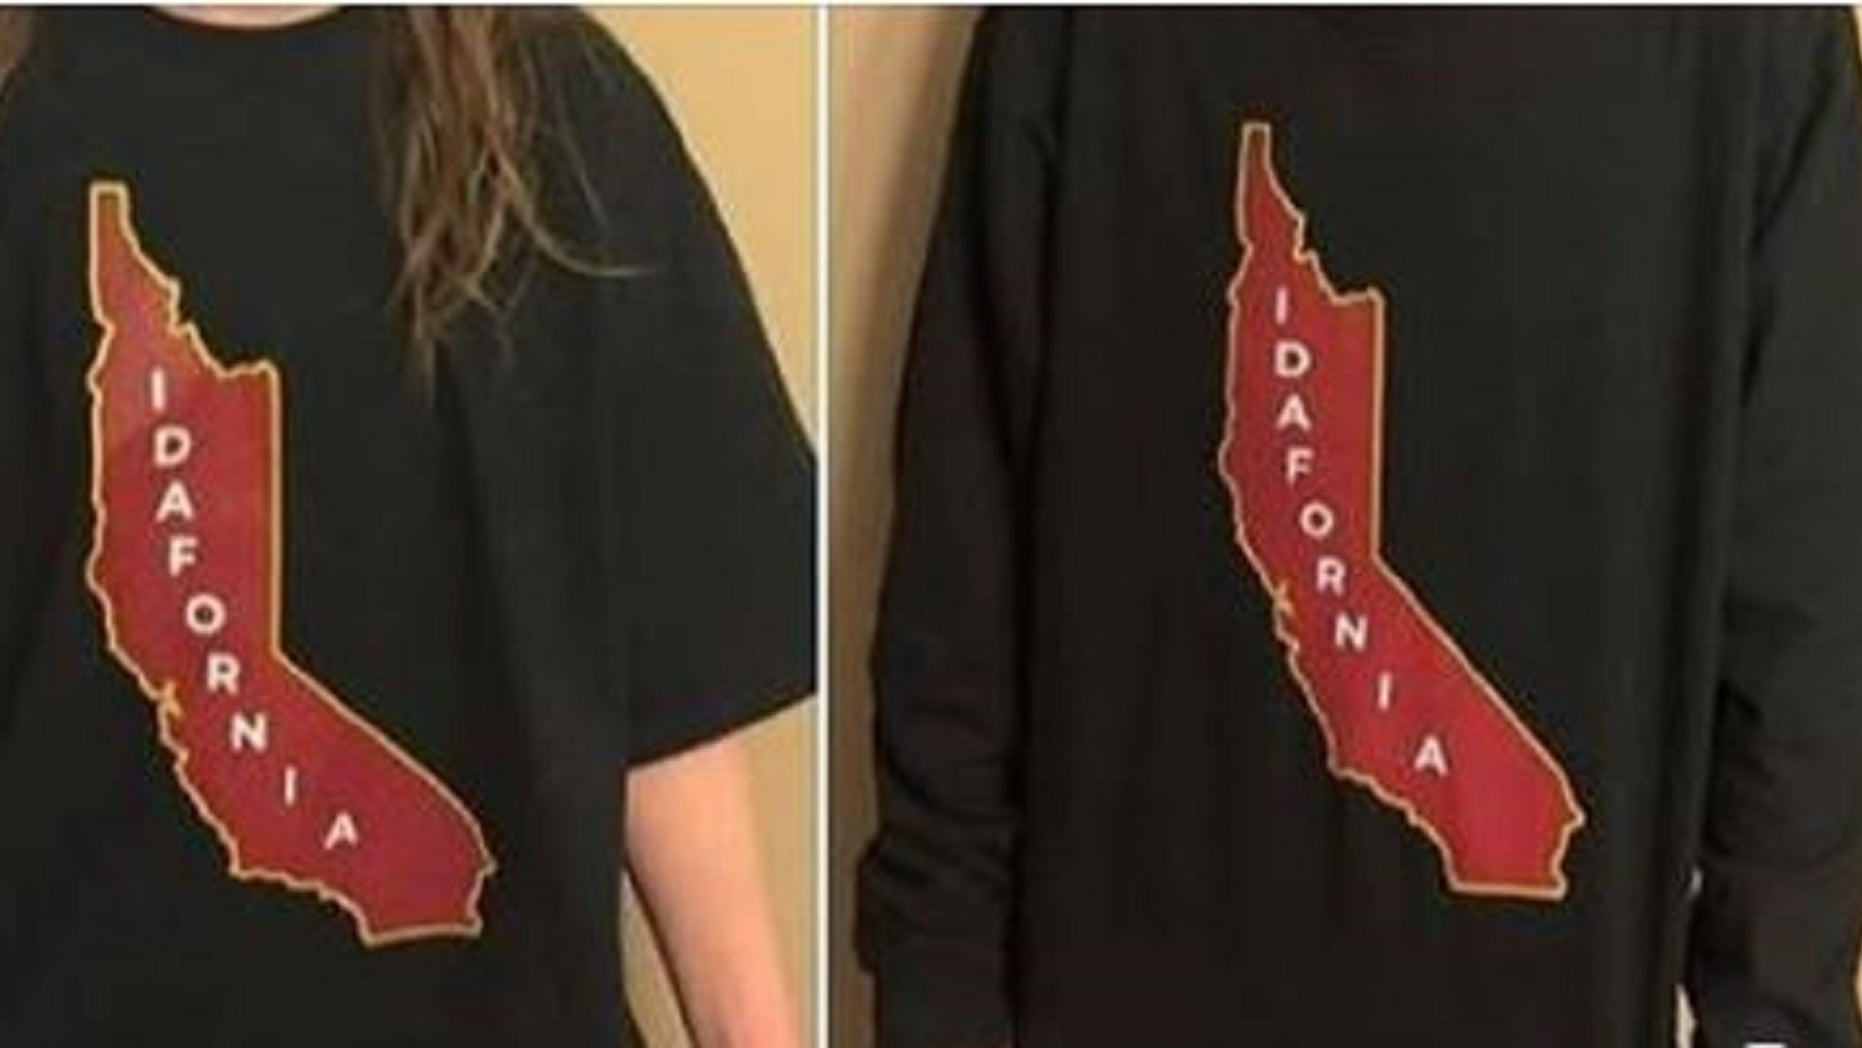 "The ""Idafornia"" shirt combines the names and portions of Idaho and California."